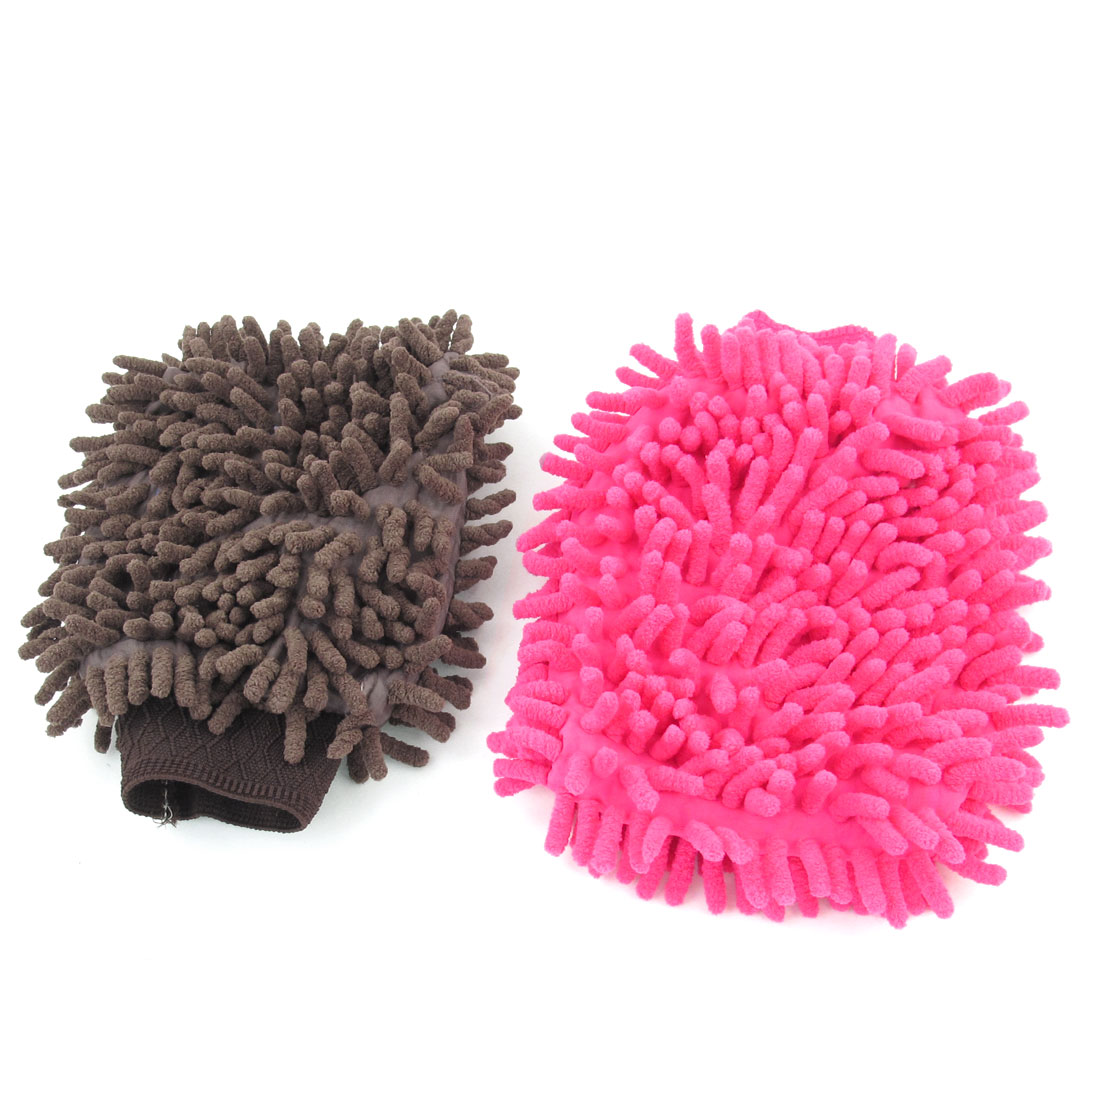 2 Pcs Car Cleaning Double Side Microfiber Mitten Glove Coffee Color Fushcia